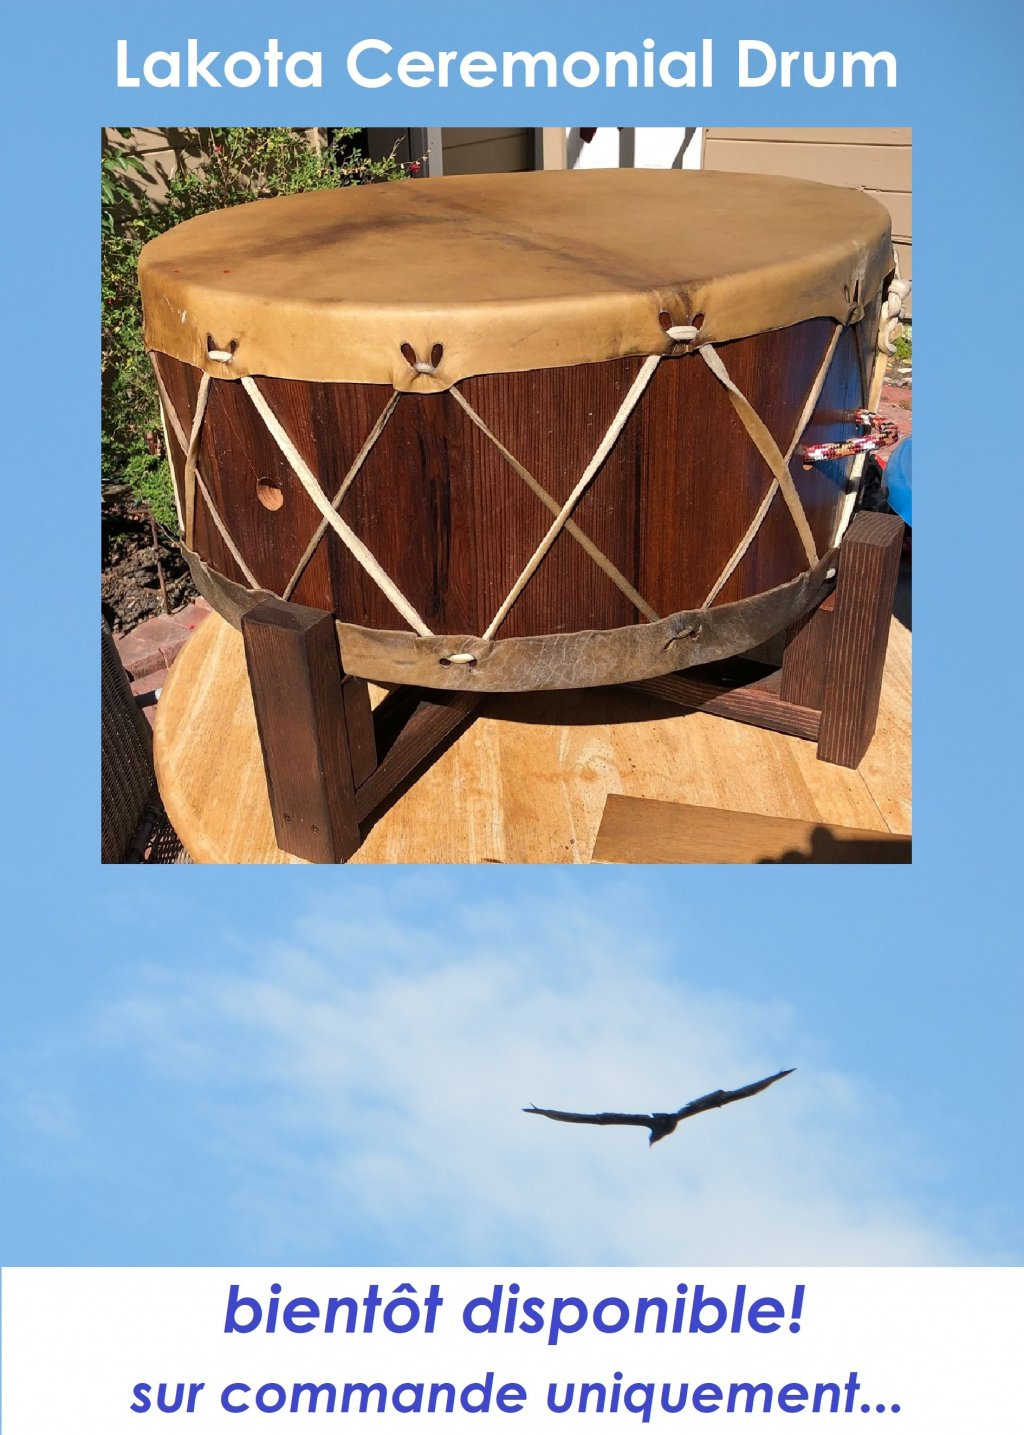 image-10049024-Lakota_ceremonial_drum3-aab32.w640.jpg